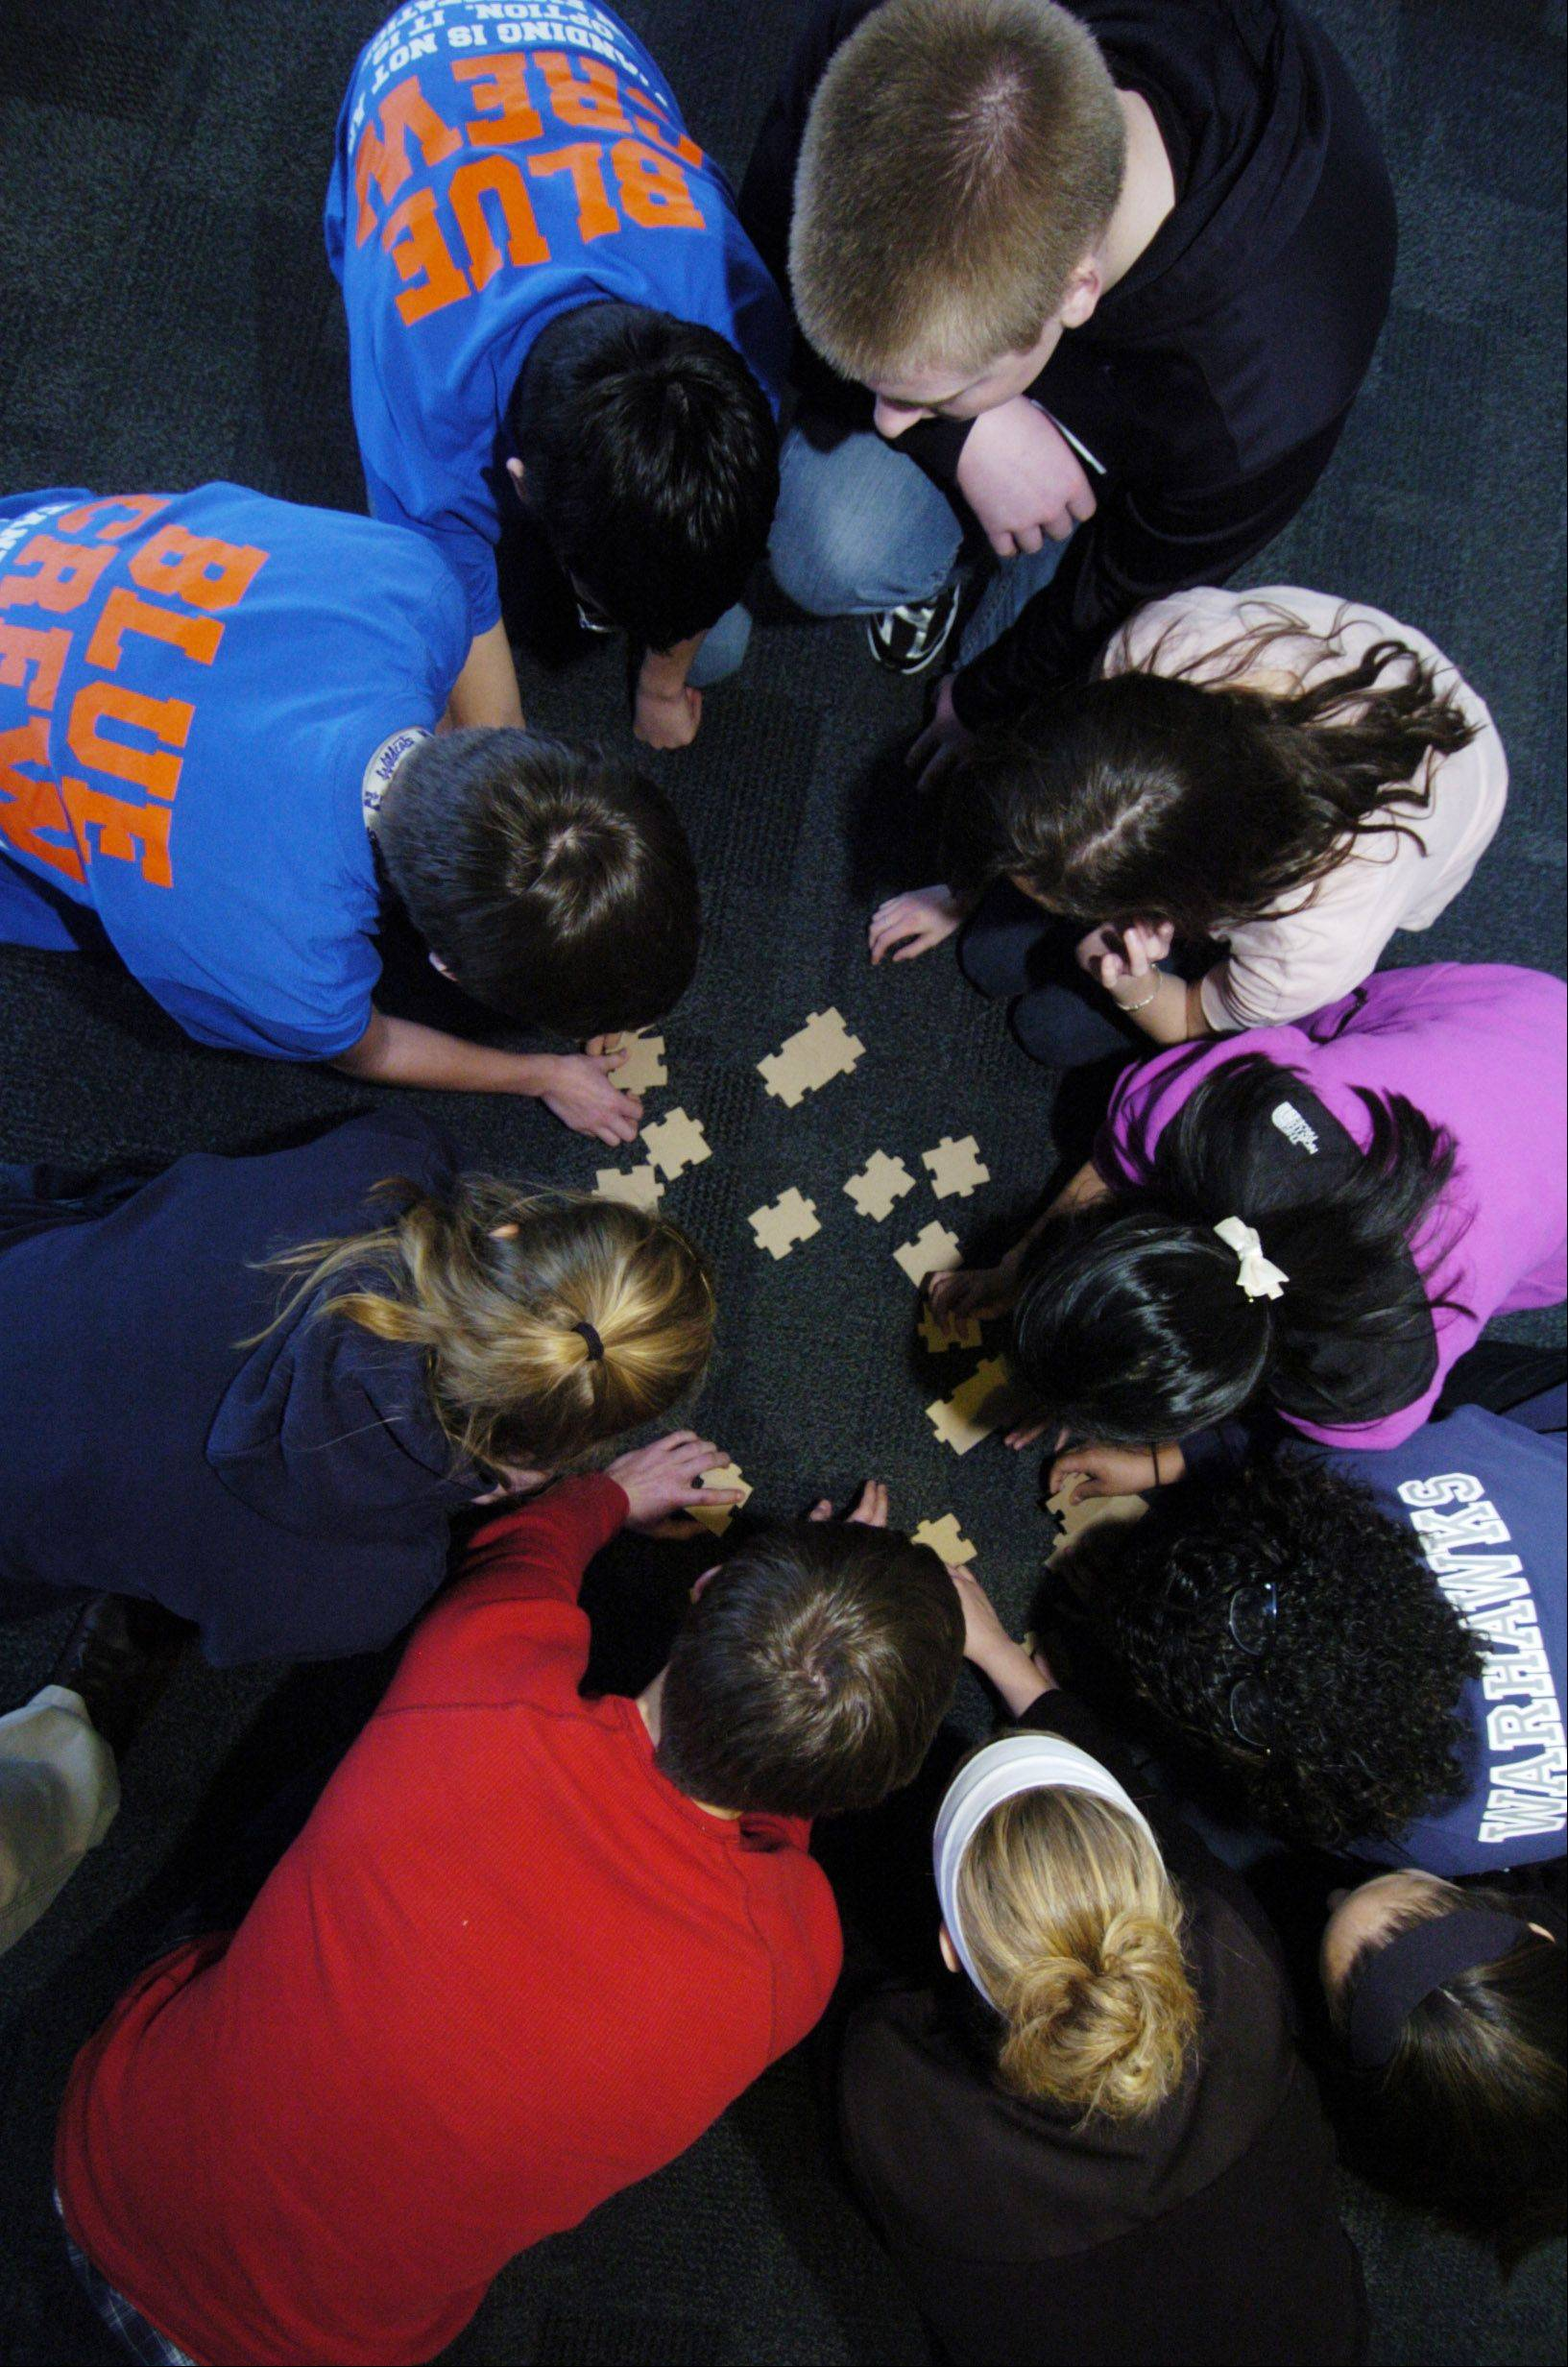 A group of students from High School District 211 work together to complete a puzzle with the pieces placed upside down during a new leadership event held at the Wojcik Conference Center in Palatine Thursday.